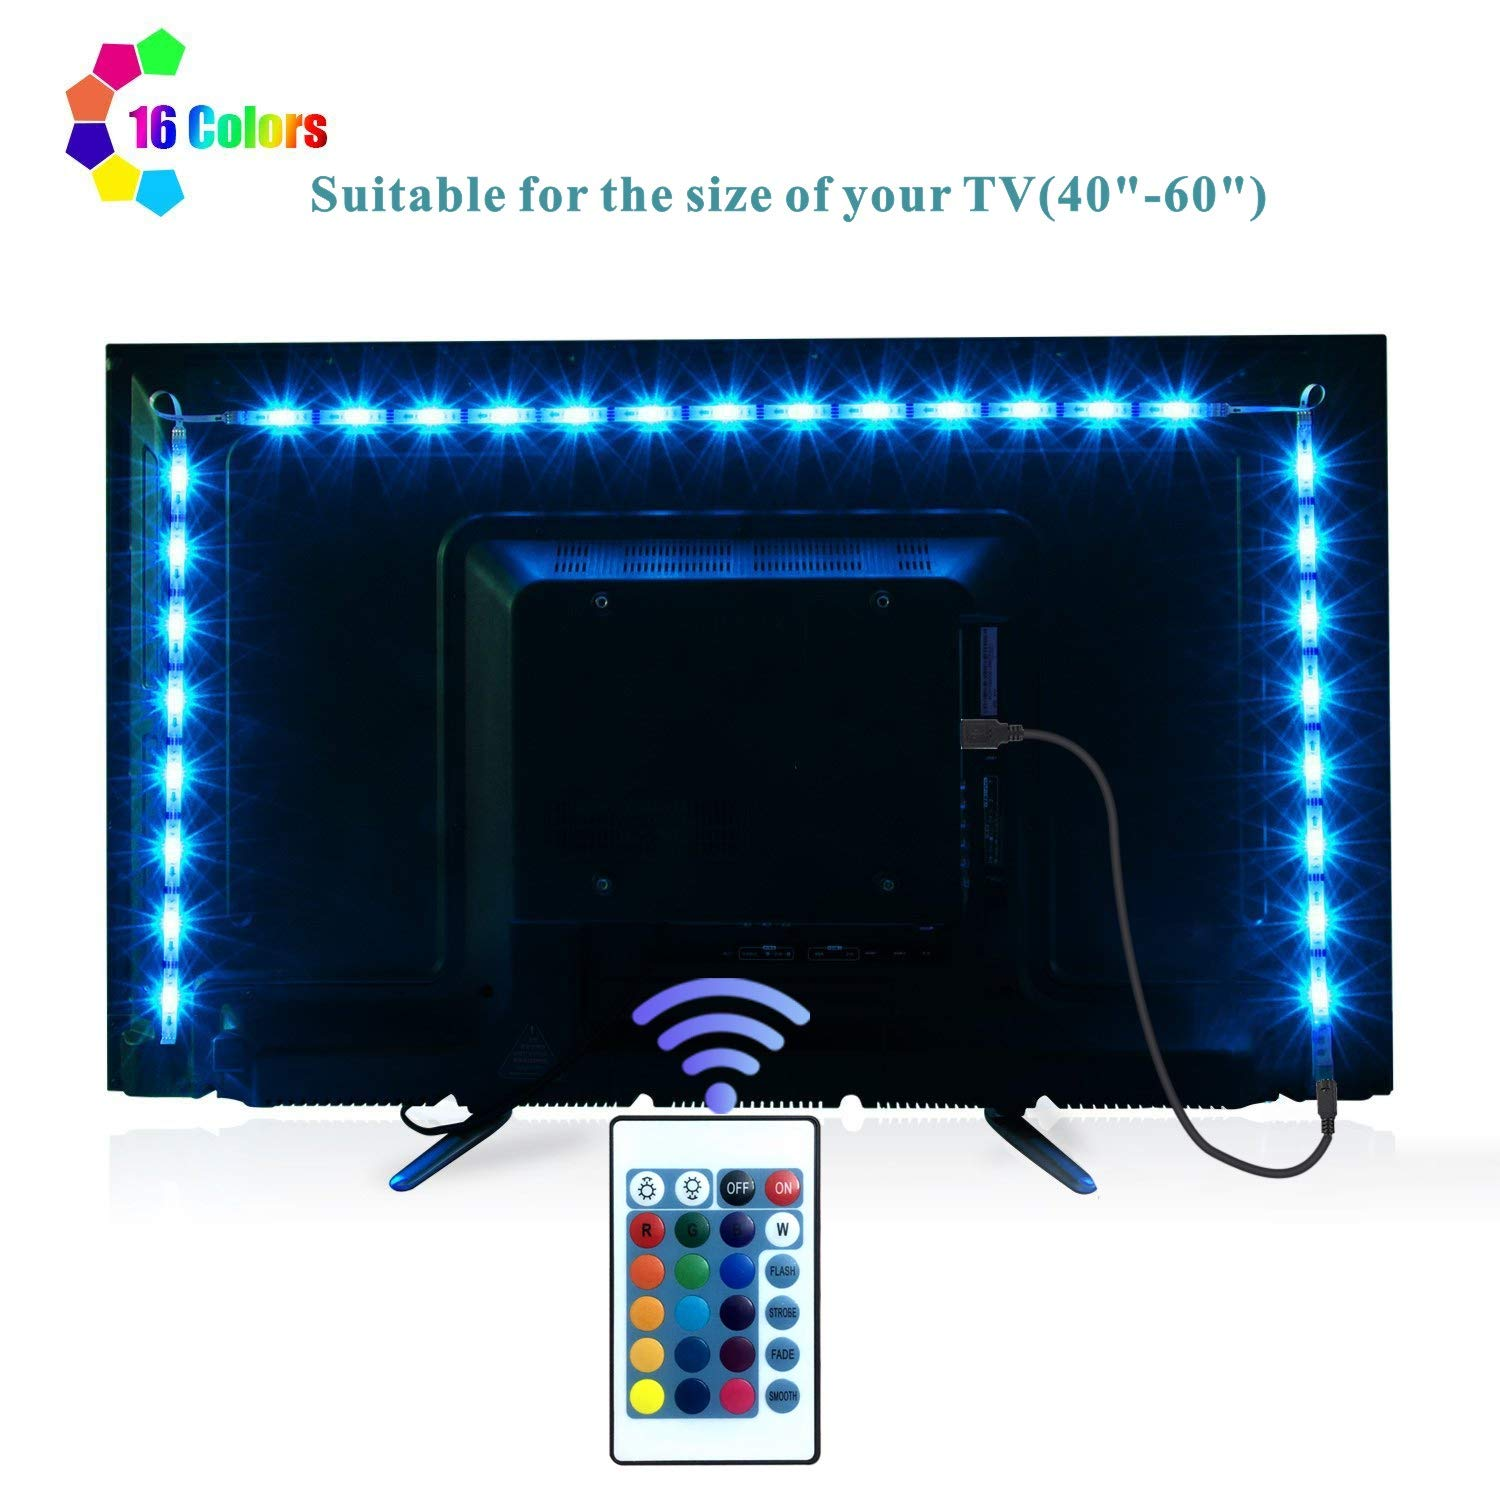 Deli LED TV Backlights Strip Lights 2M/6.56ft RGB LED Lights Strips for 40 to 60 in HDTV Desktop PC Neon Light Bias Lighting with 24 Key Remote USB LED Strips TV Backlight